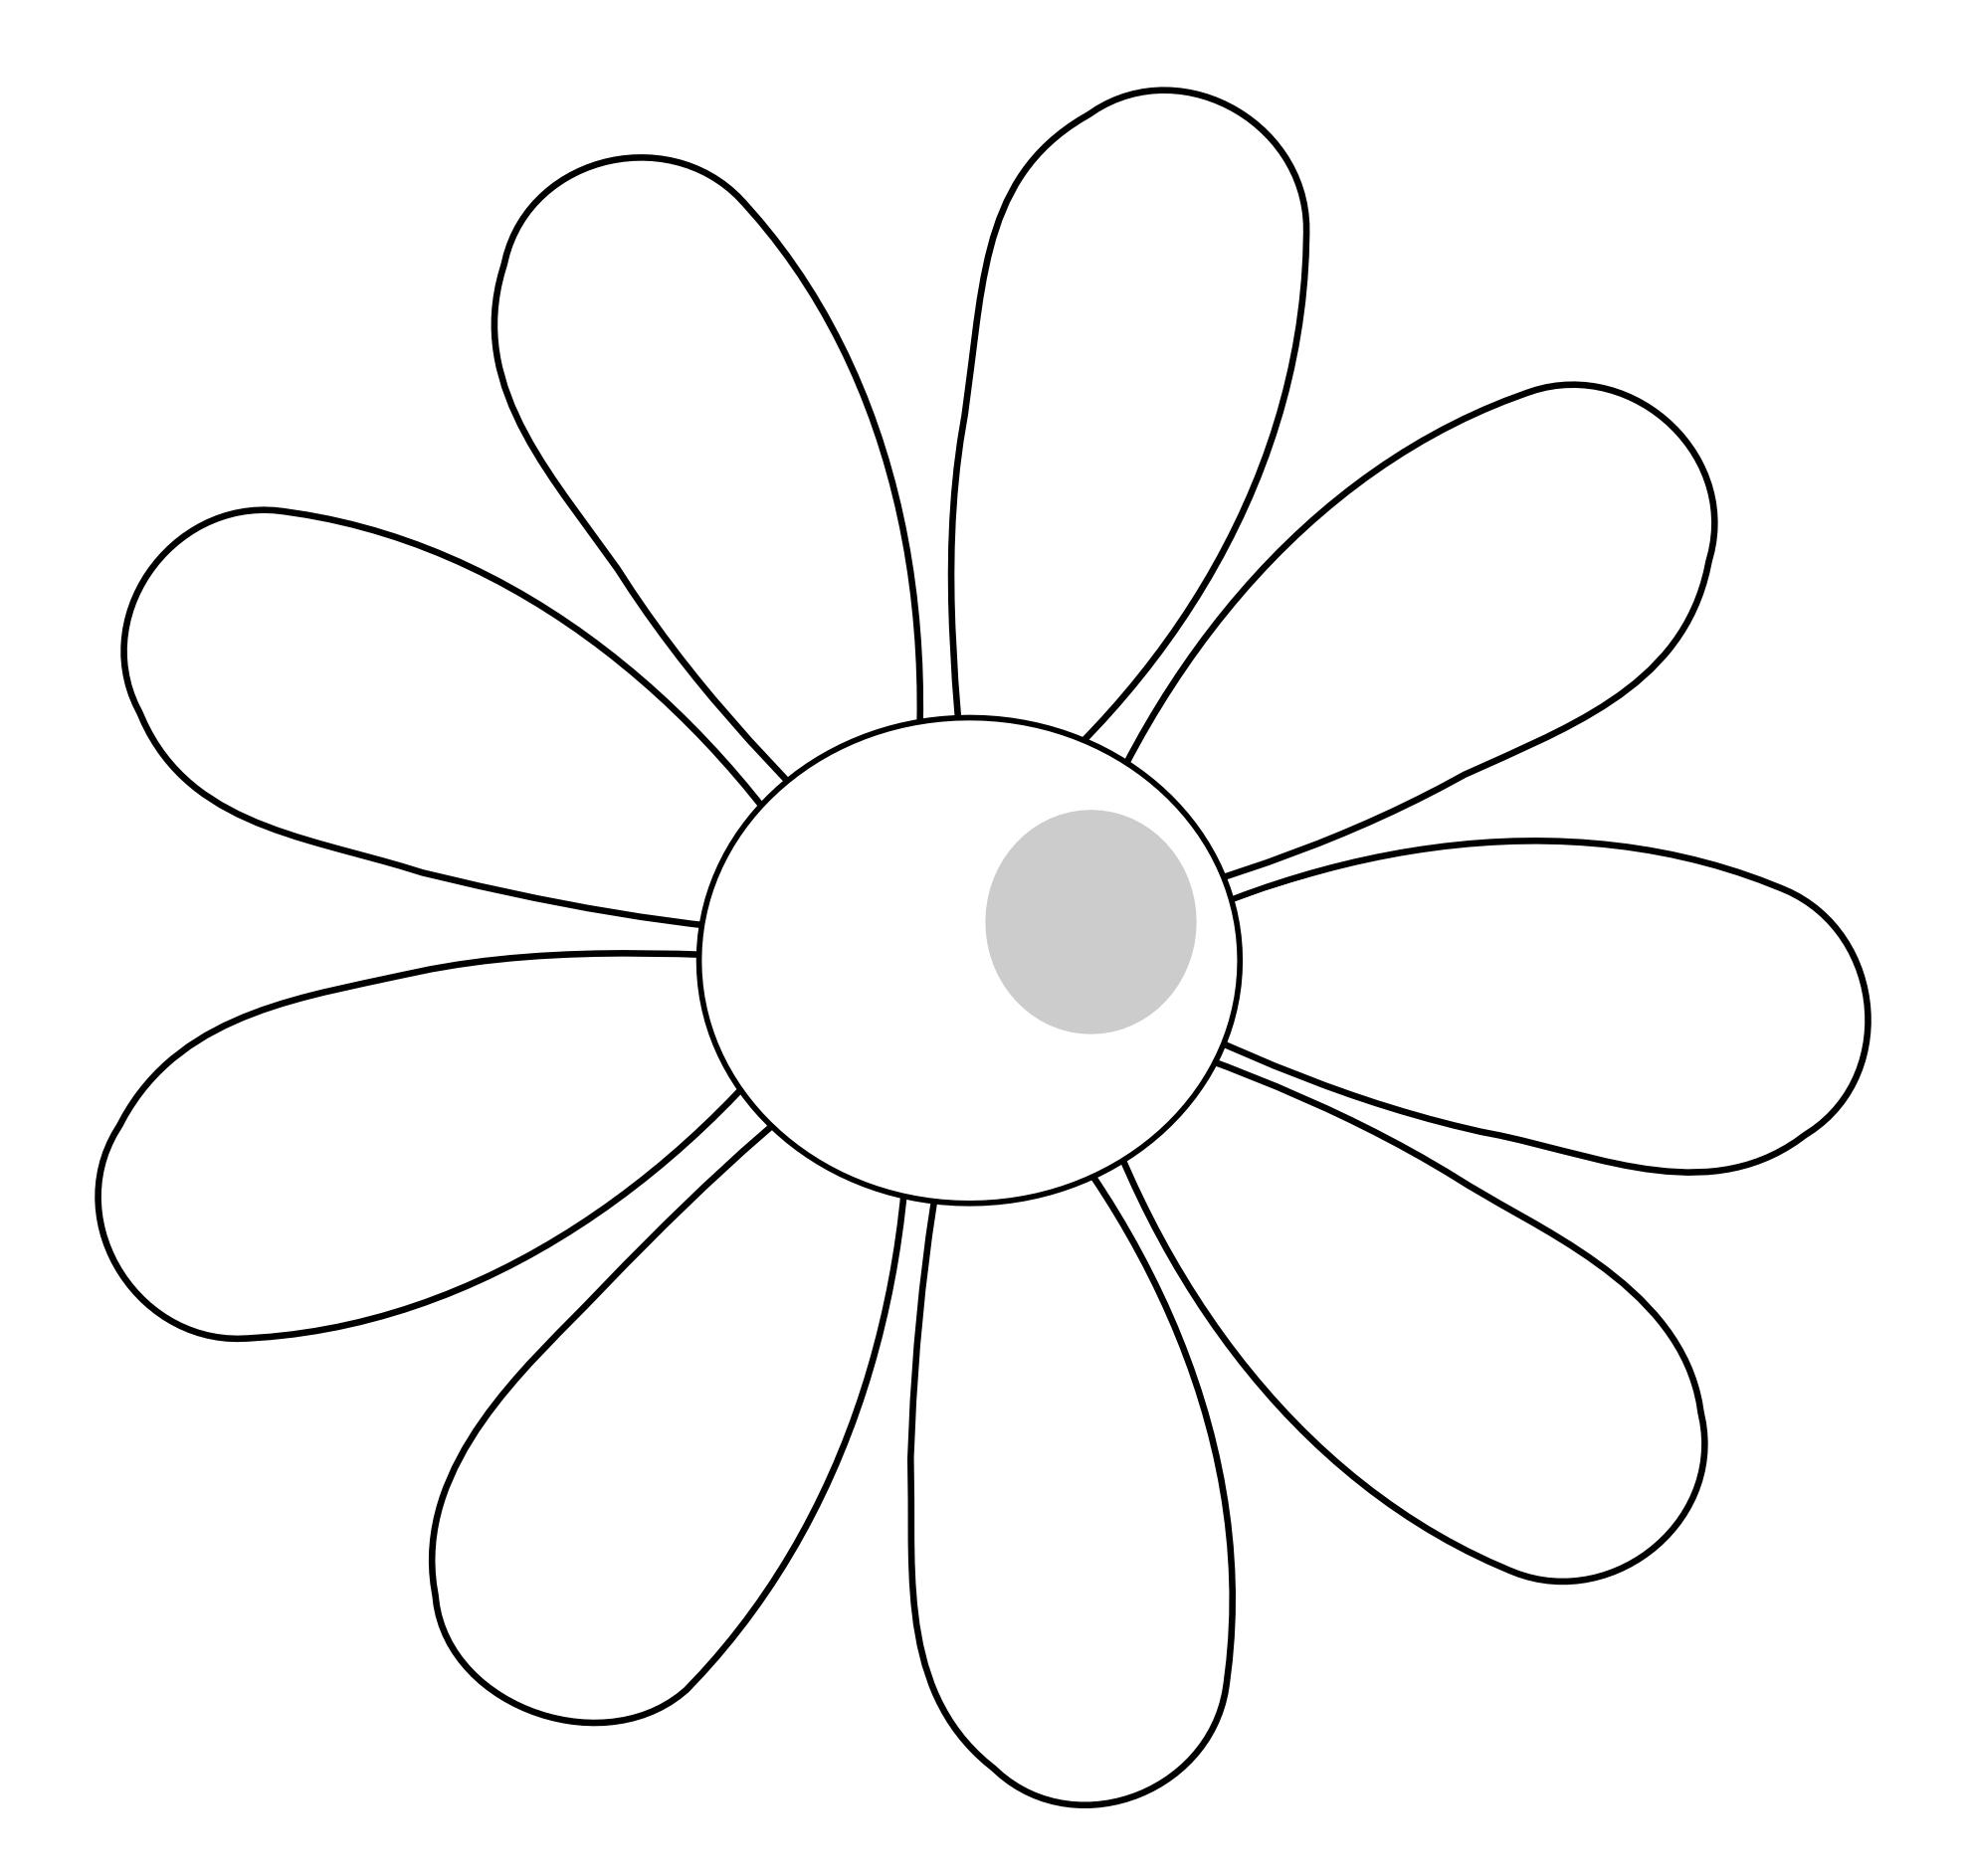 Black And White Daisy Clipart   Clipart Panda   Free Clipart Images